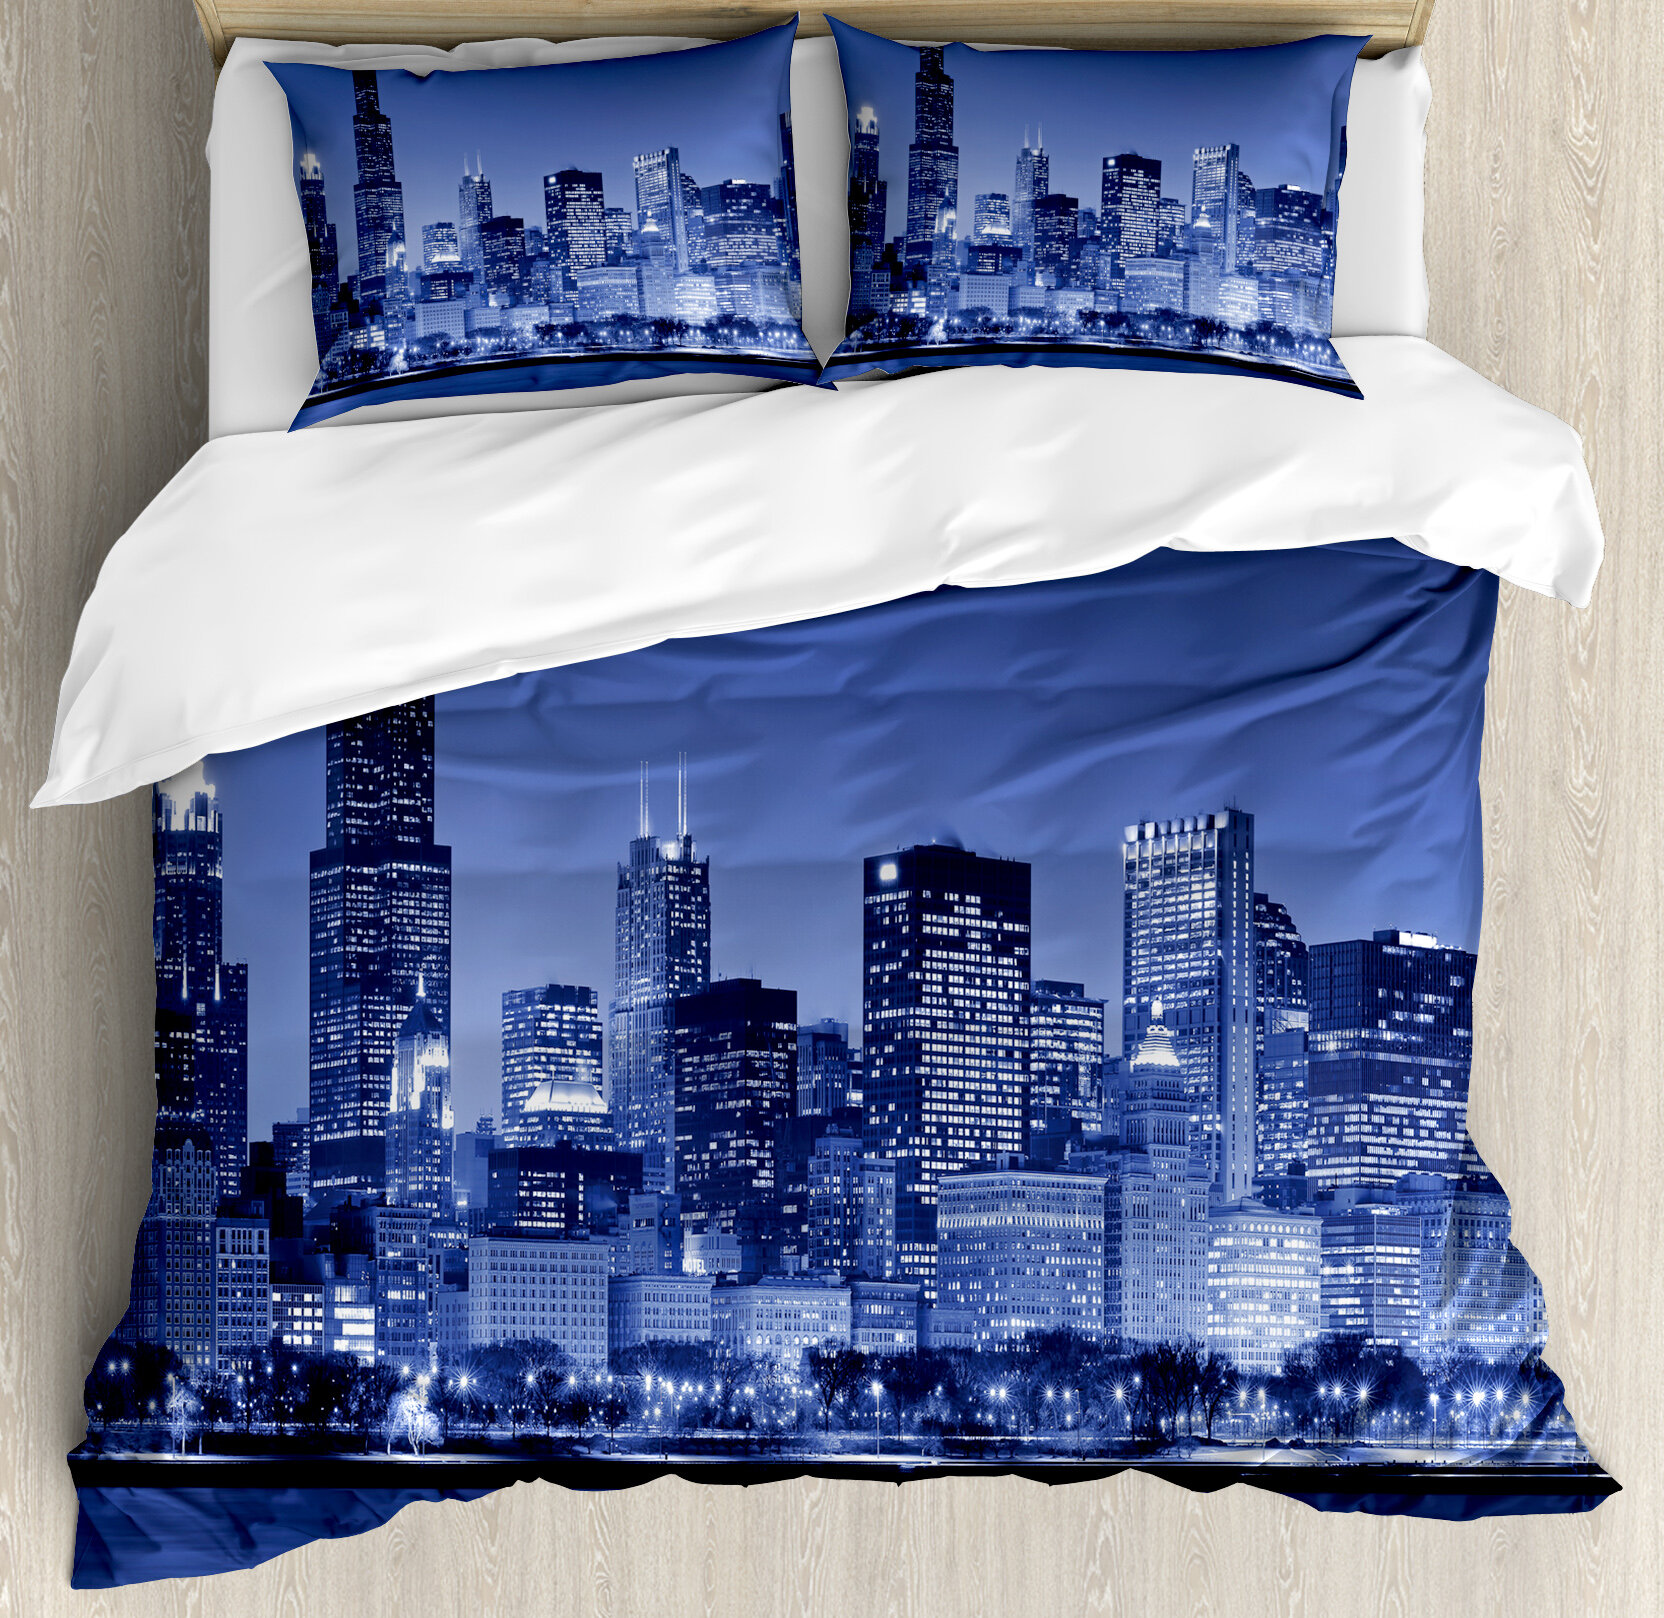 Usa Chicago City Skyline at Night with Tall Buildings Urban Modern Life  American Town Scene Duvet Cover Set